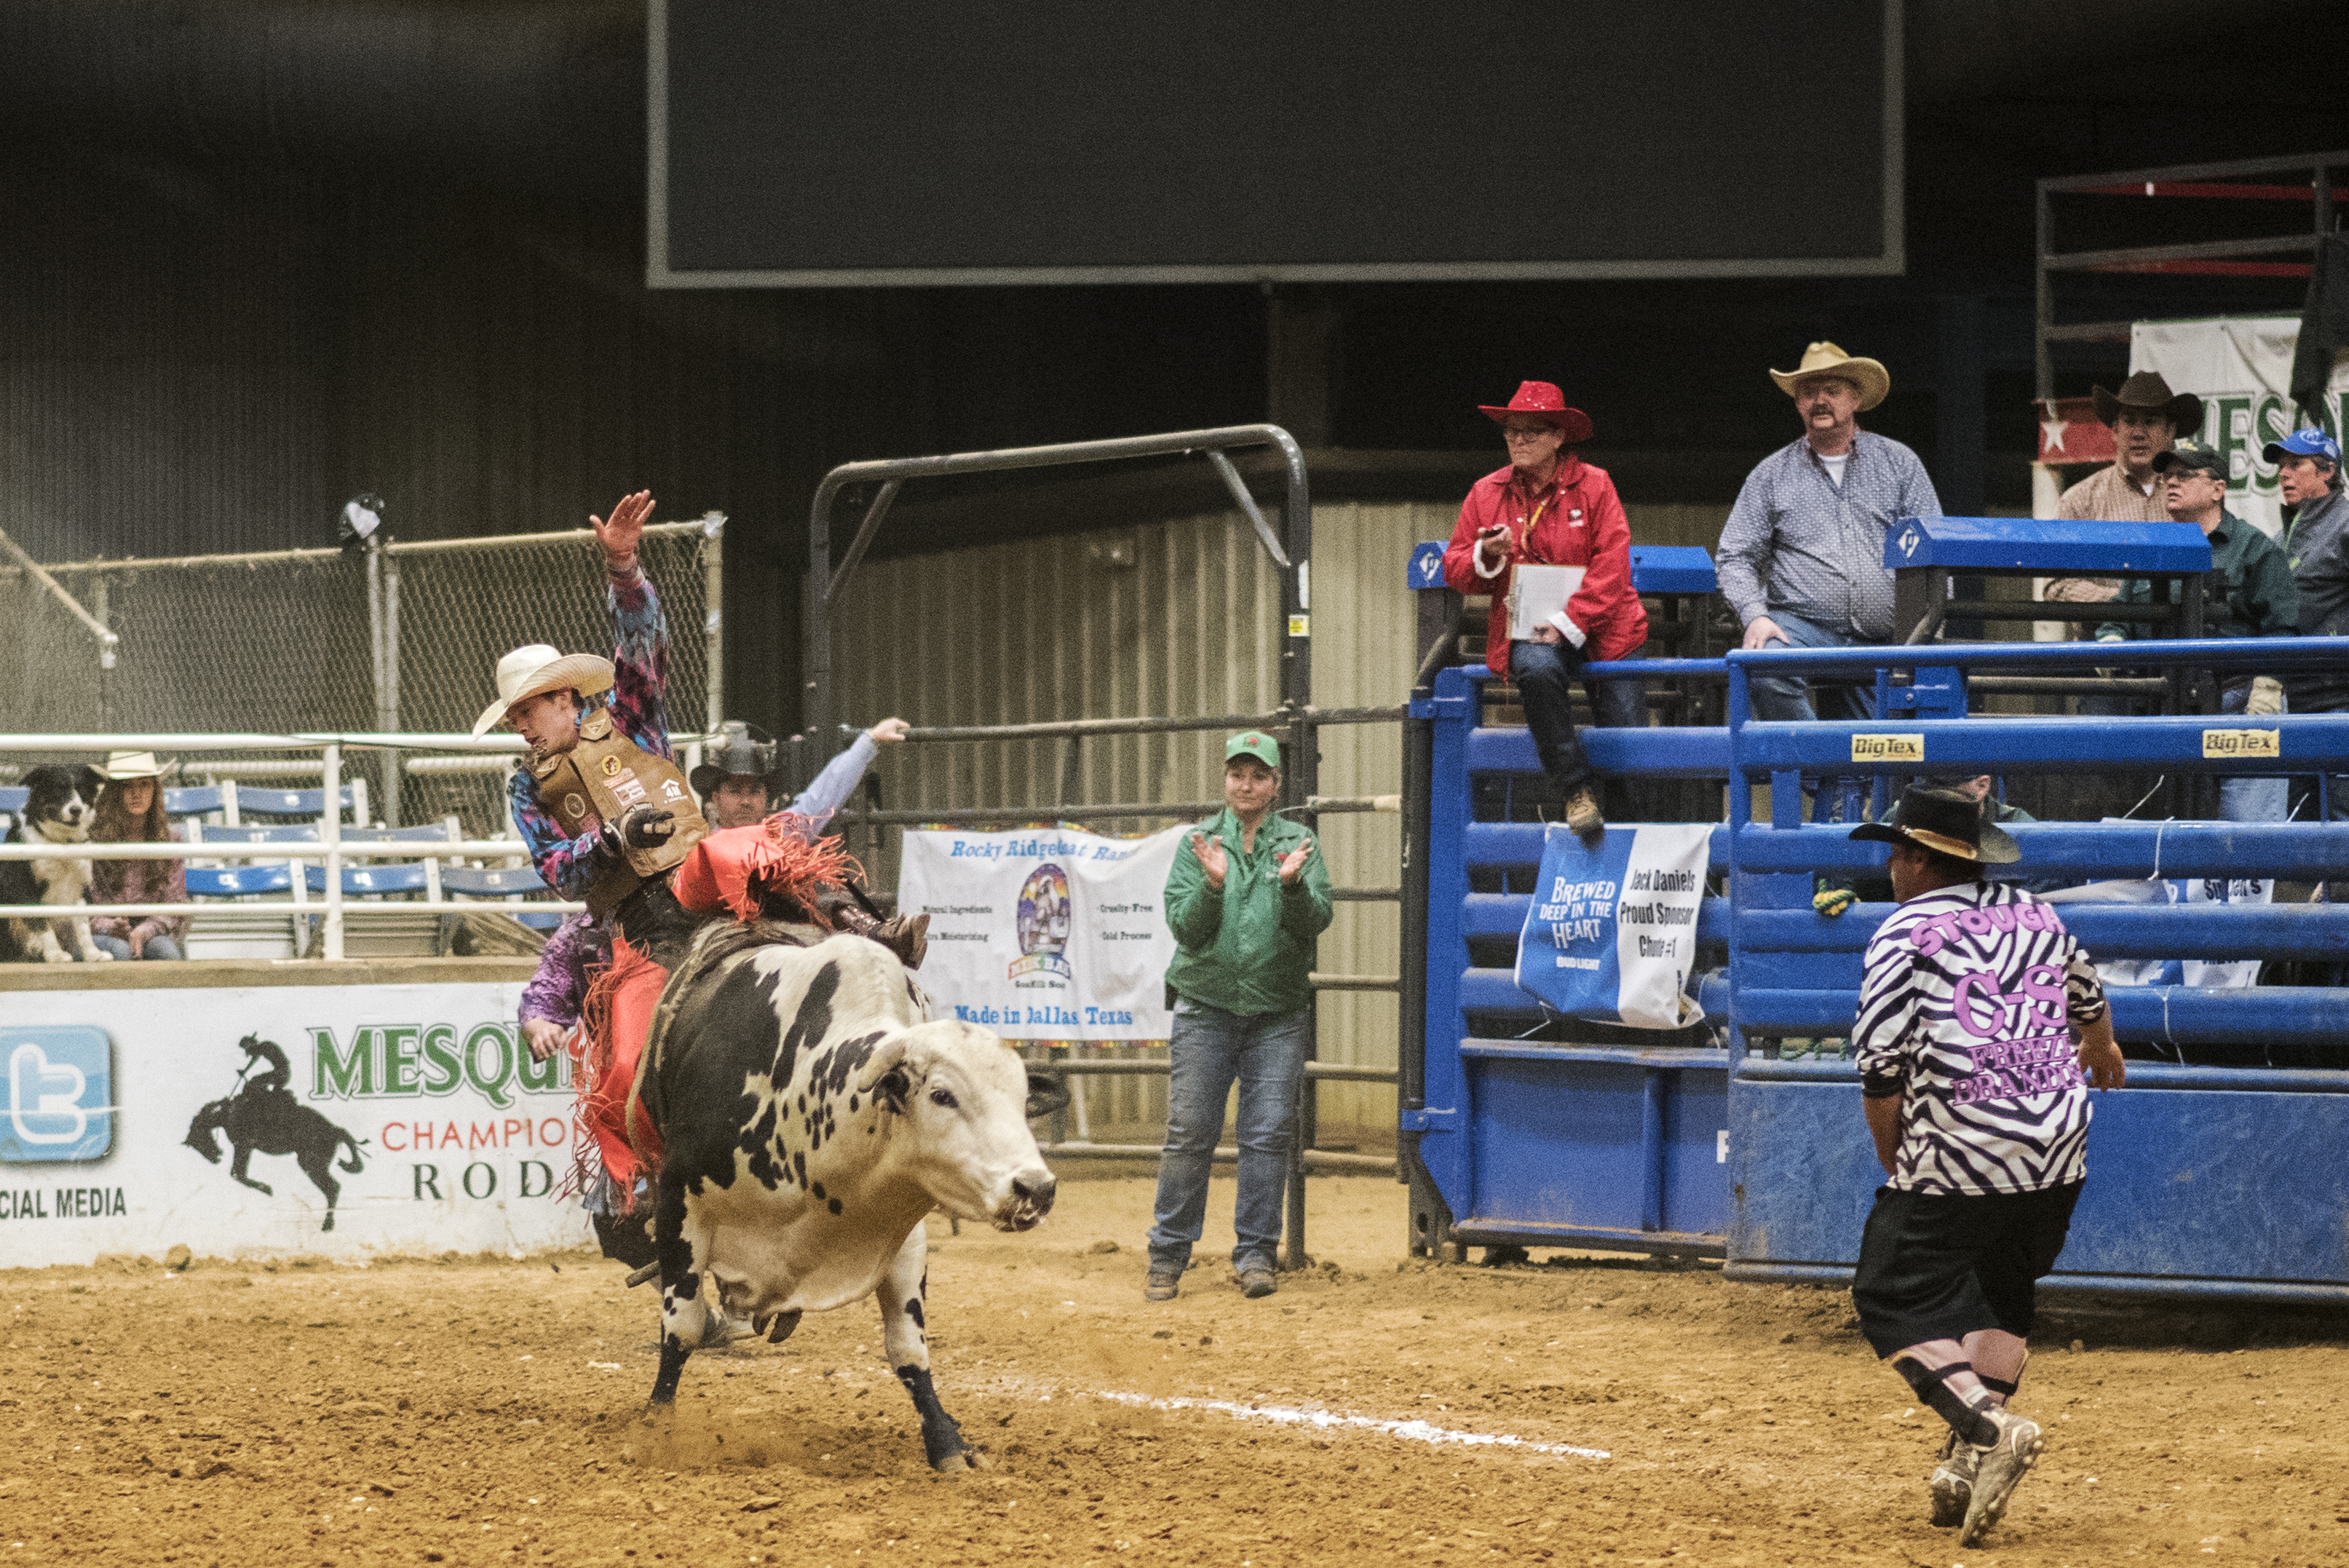 PHOTOS: TGRA's 35th Annual Texas Traditions Rodeo (6 of 6)